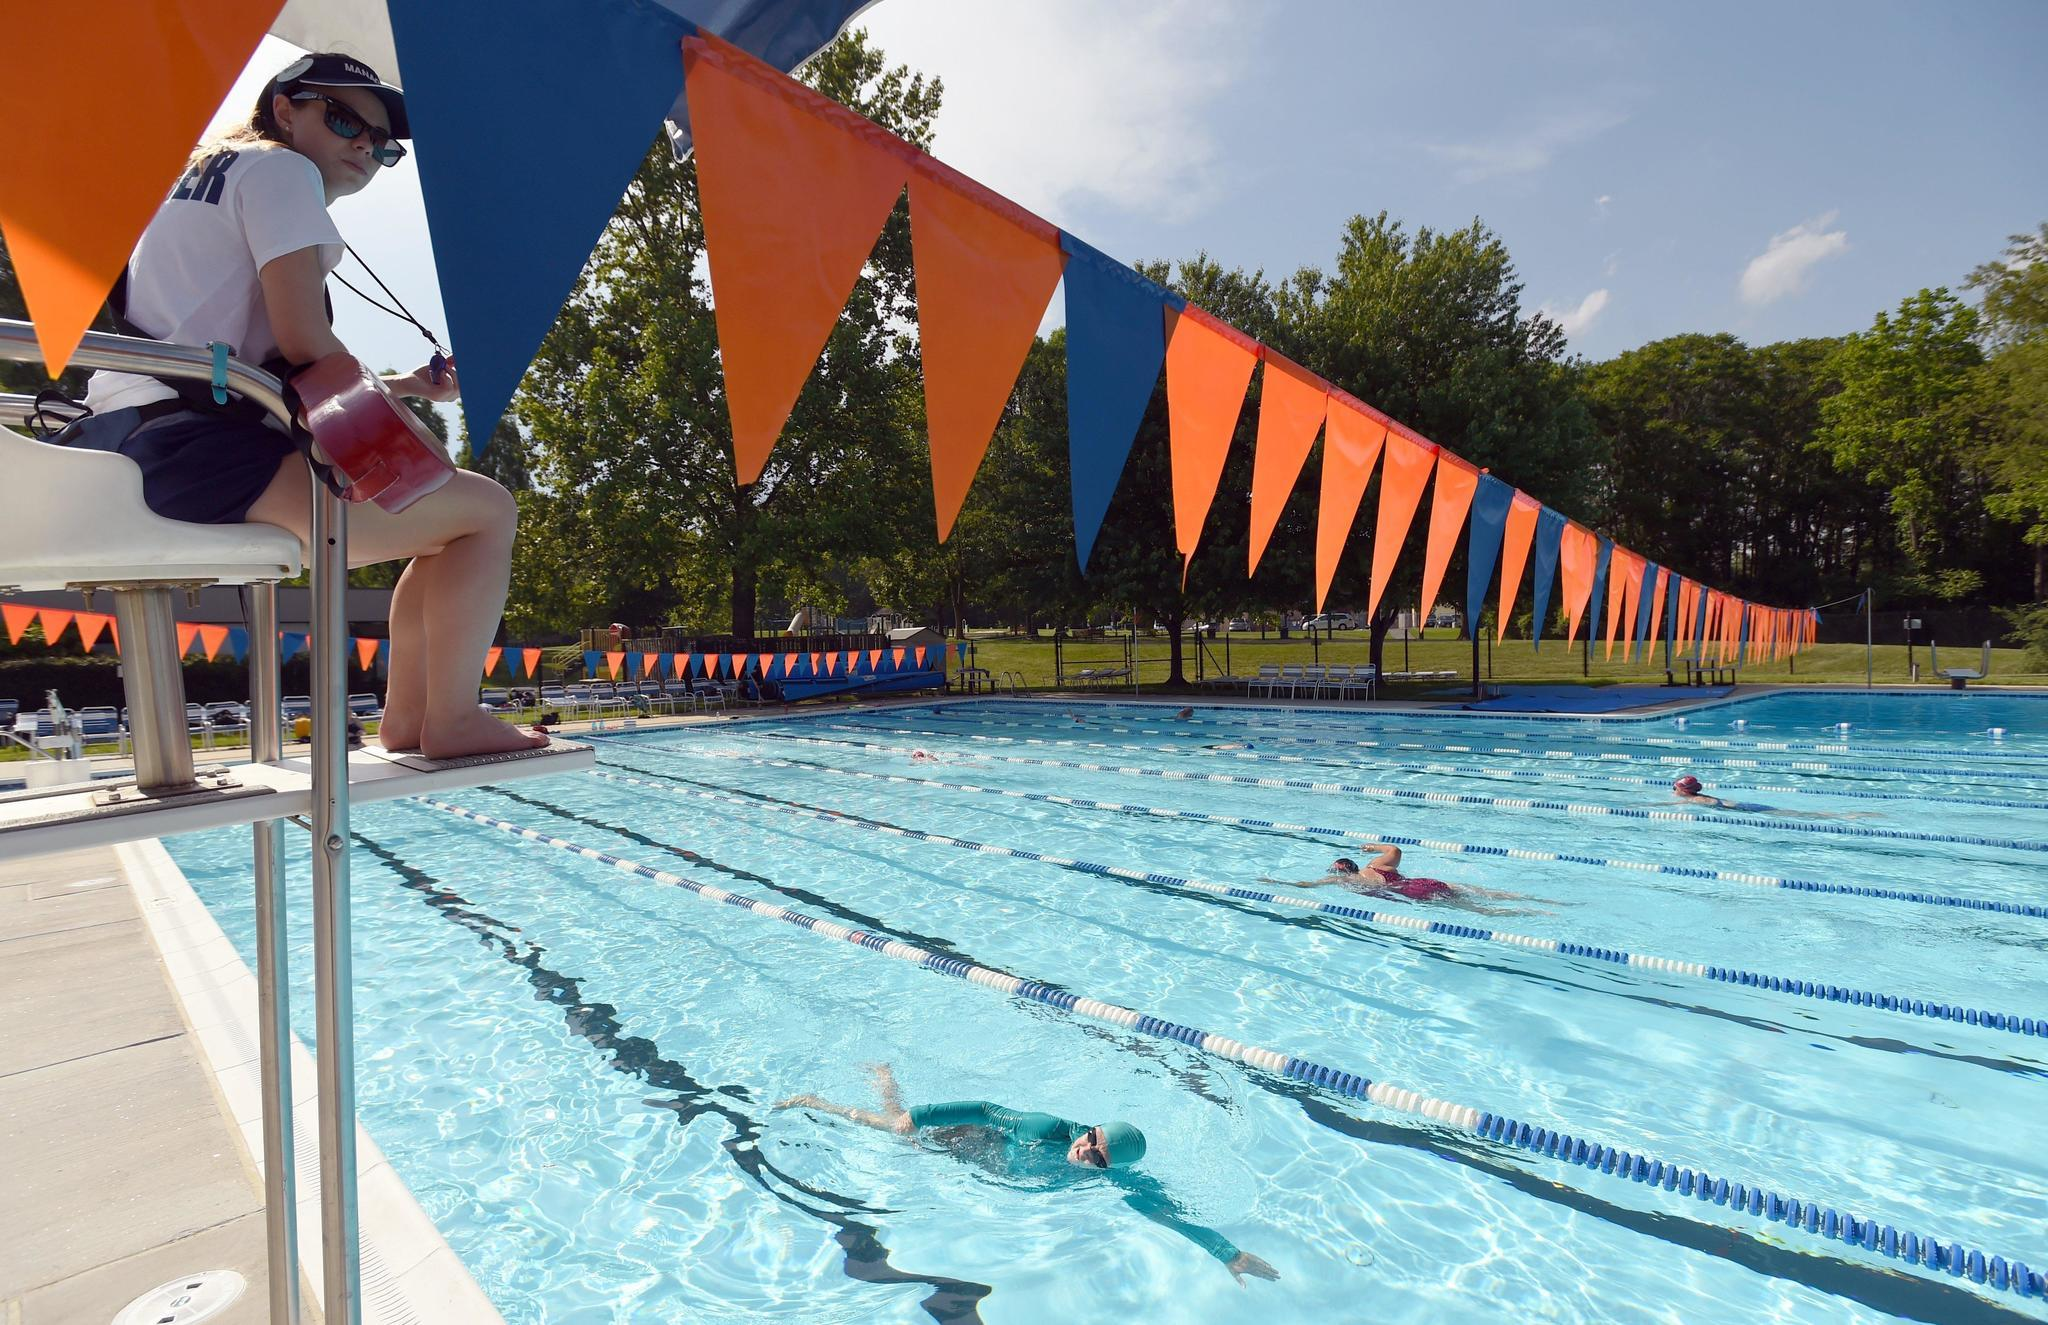 133a93903d07 Columbia Association to debut pool upgrades over Memorial Day weekend -  Columbia Flier